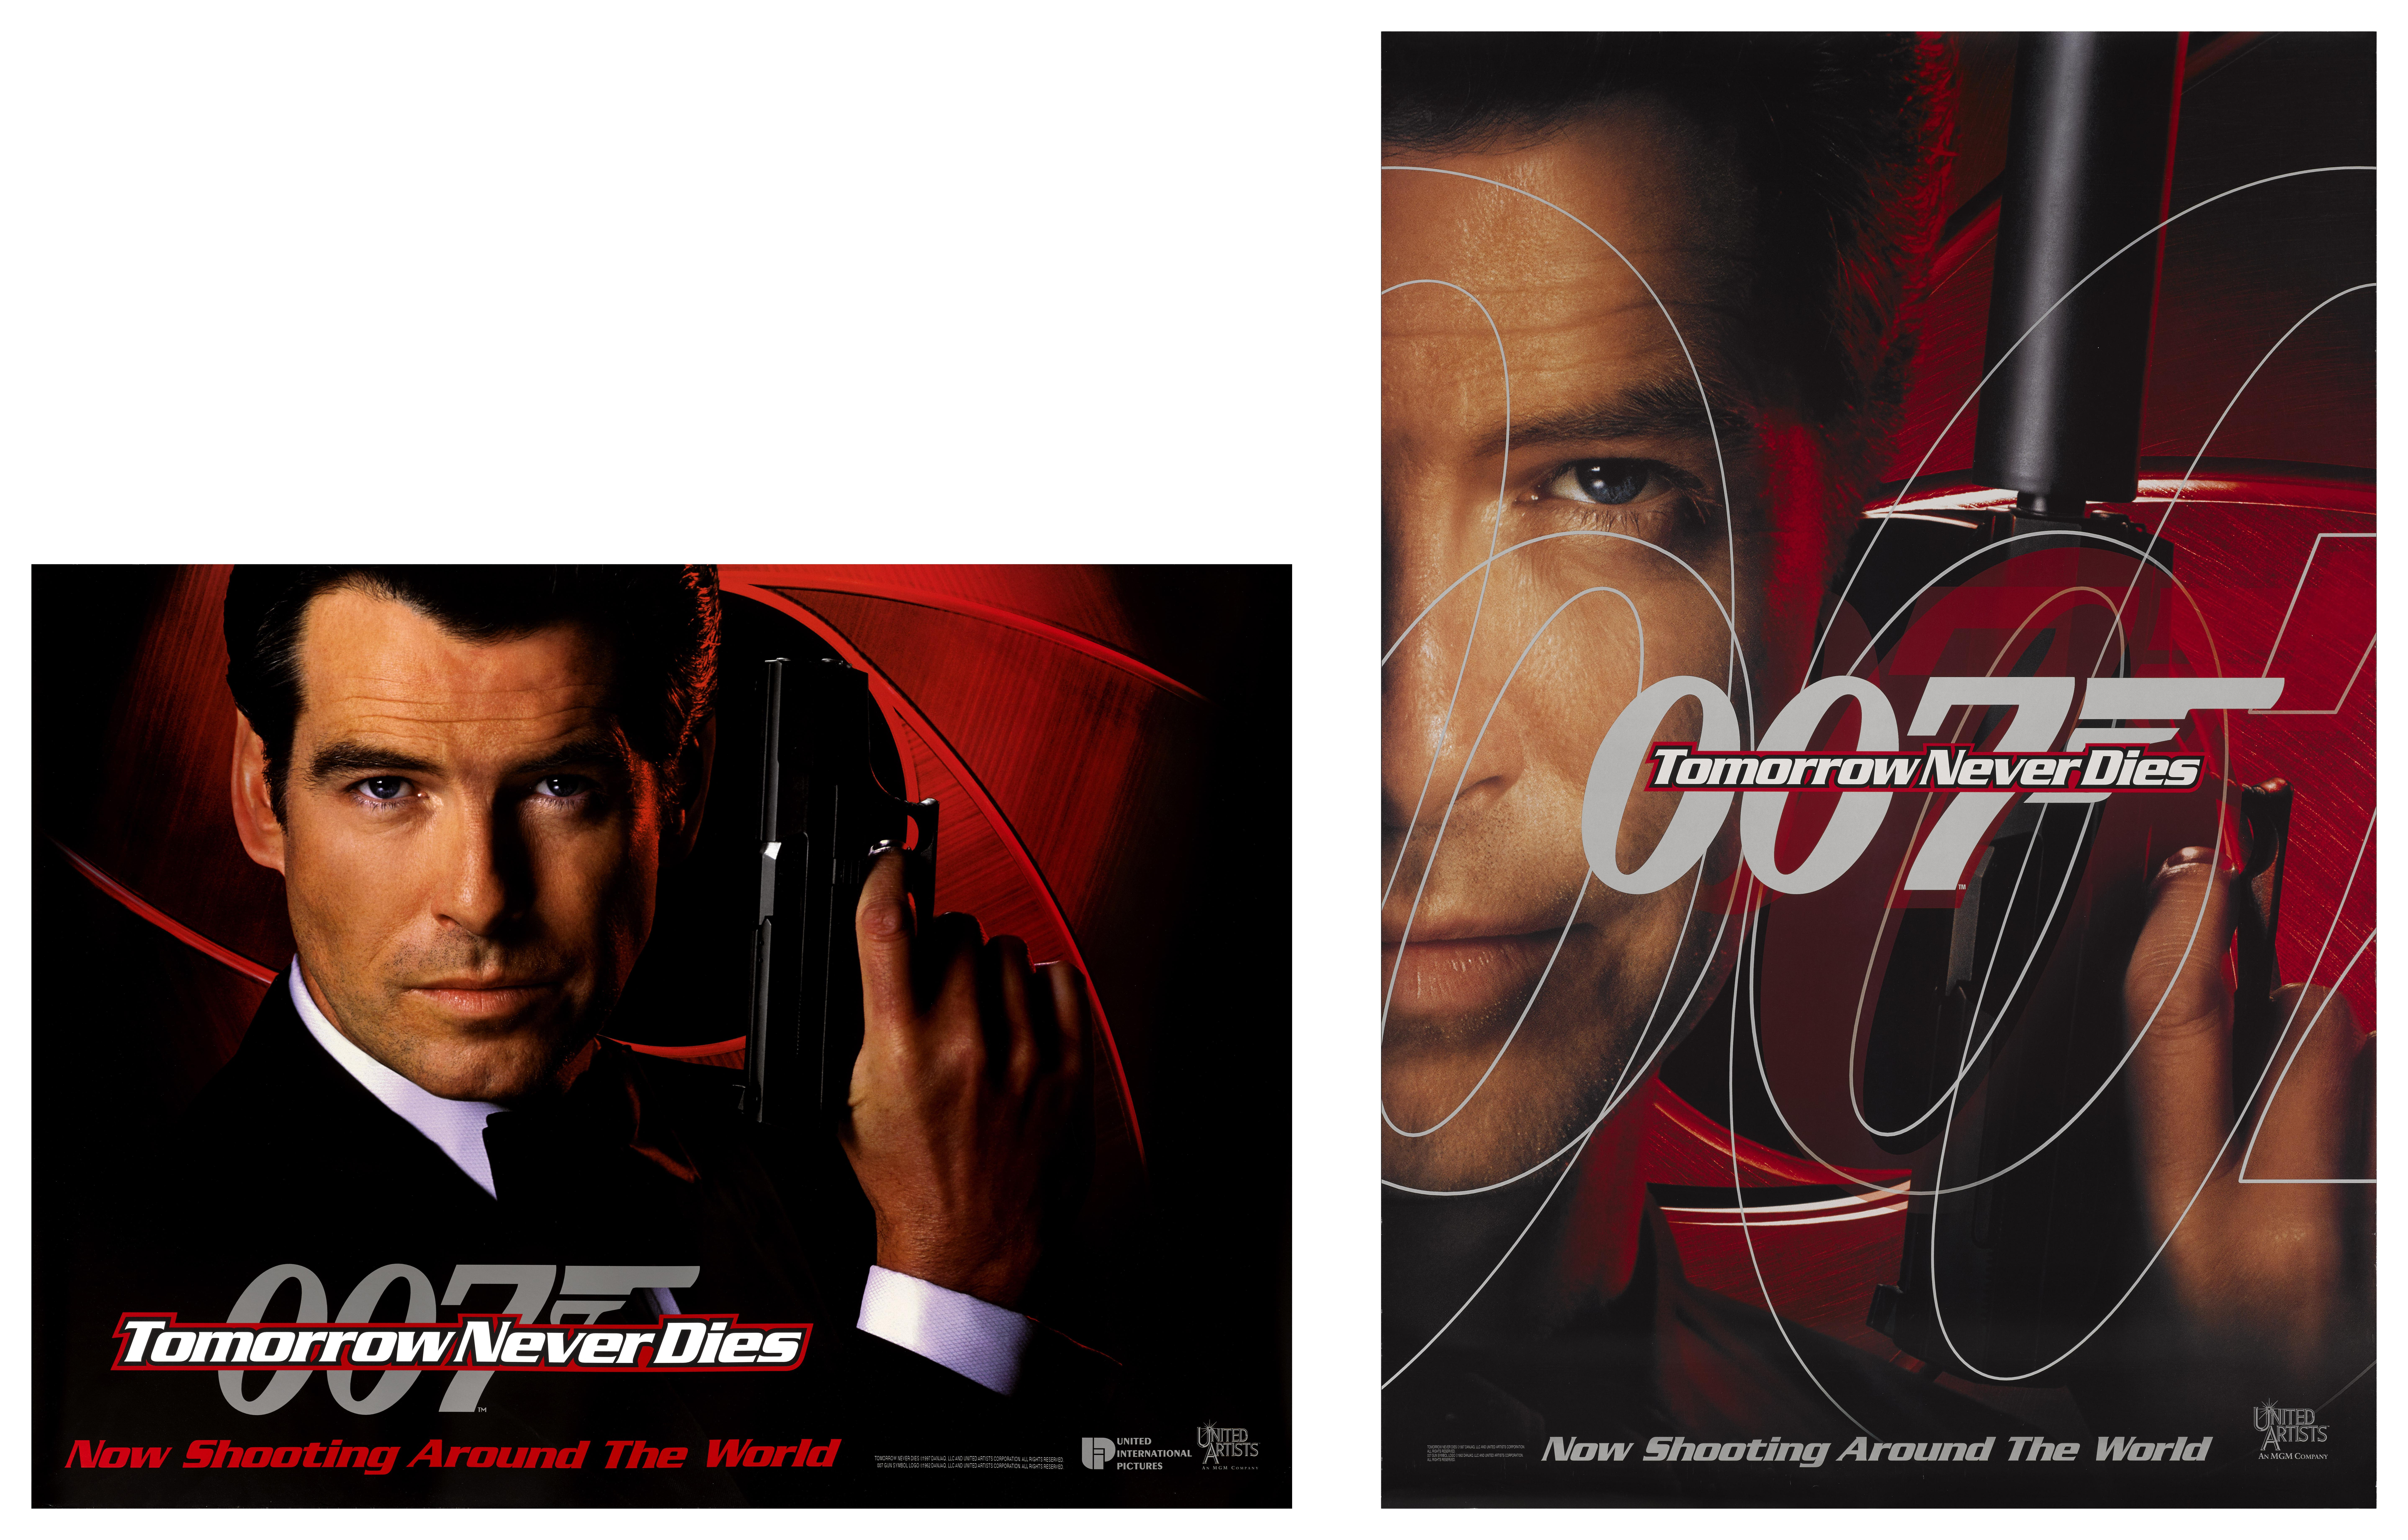 TOMORROW NEVER DIES (1997) TWO POSTERS, BRITISH ADVANCE, DOUBLE-SIDED AND US ADVANCE, WITH PRESS PACK, US